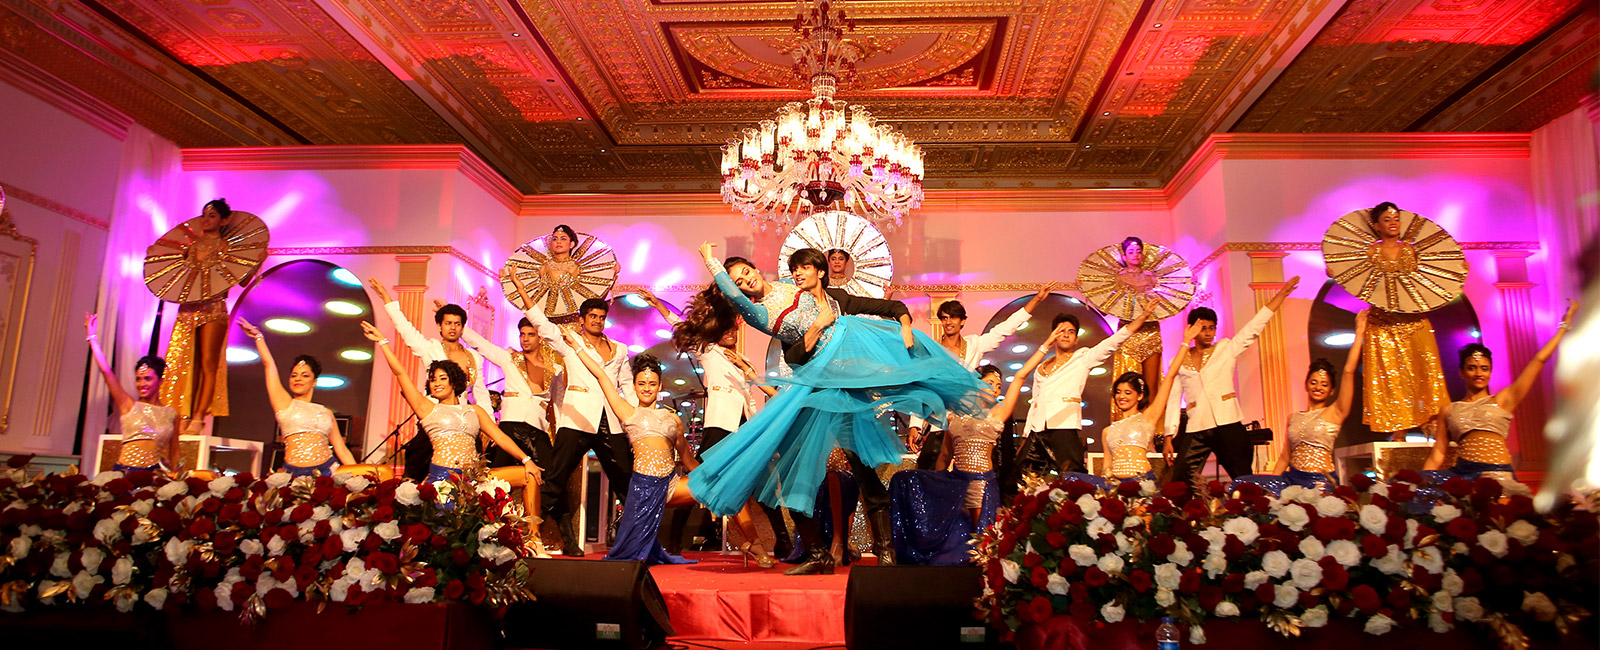 A Legendary Indian Wedding at Mardan Palace,Antalya